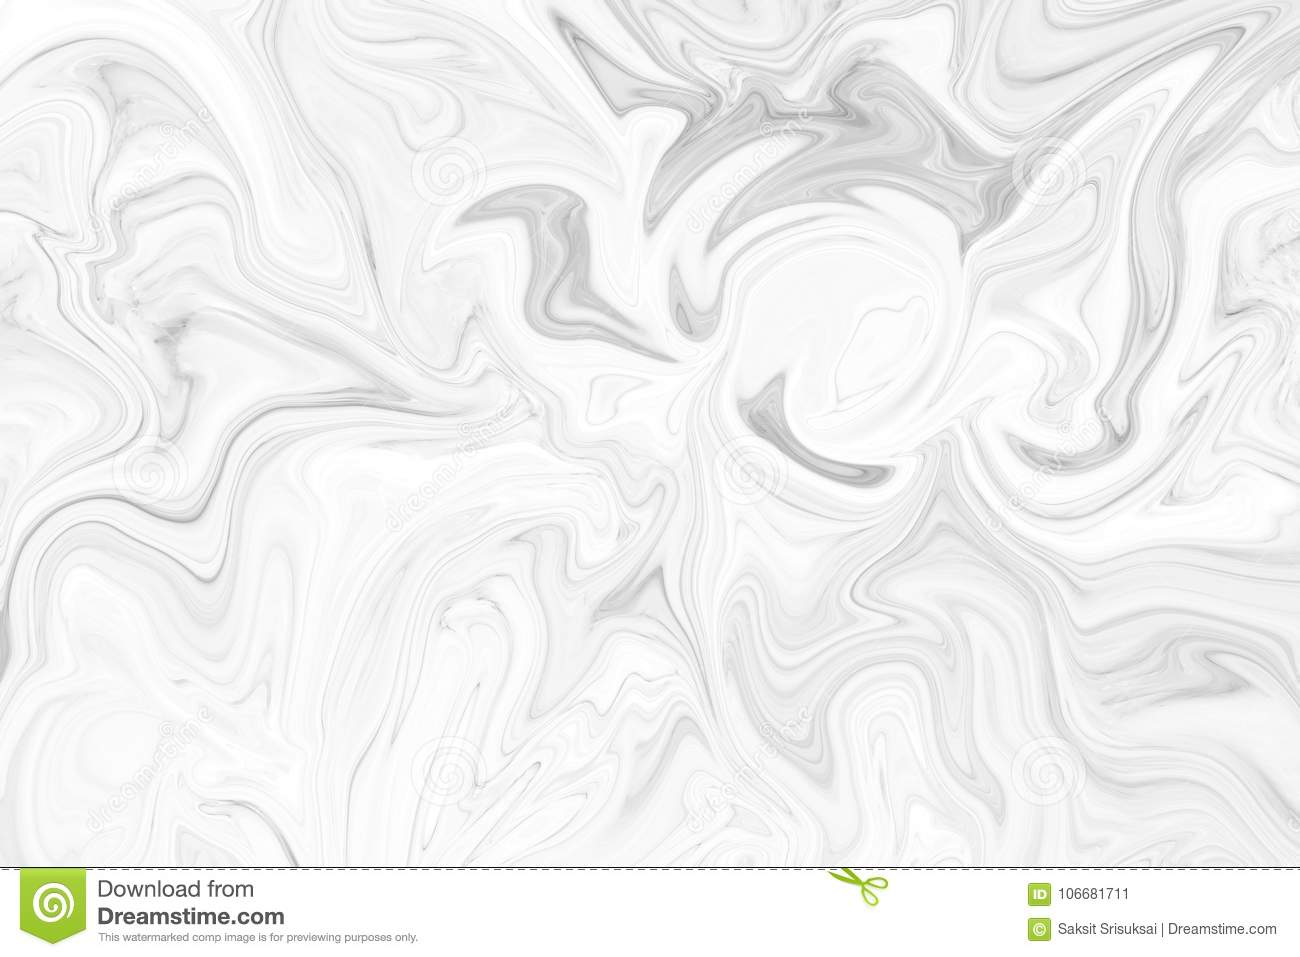 Great Wallpaper High Resolution Marble - abstract-background-watercolor-wash-white-marble-pattern-texture-natural-interiors-stone-wall-design-art-wo-high-resolution-106681711  Best Photo Reference_572699.jpg